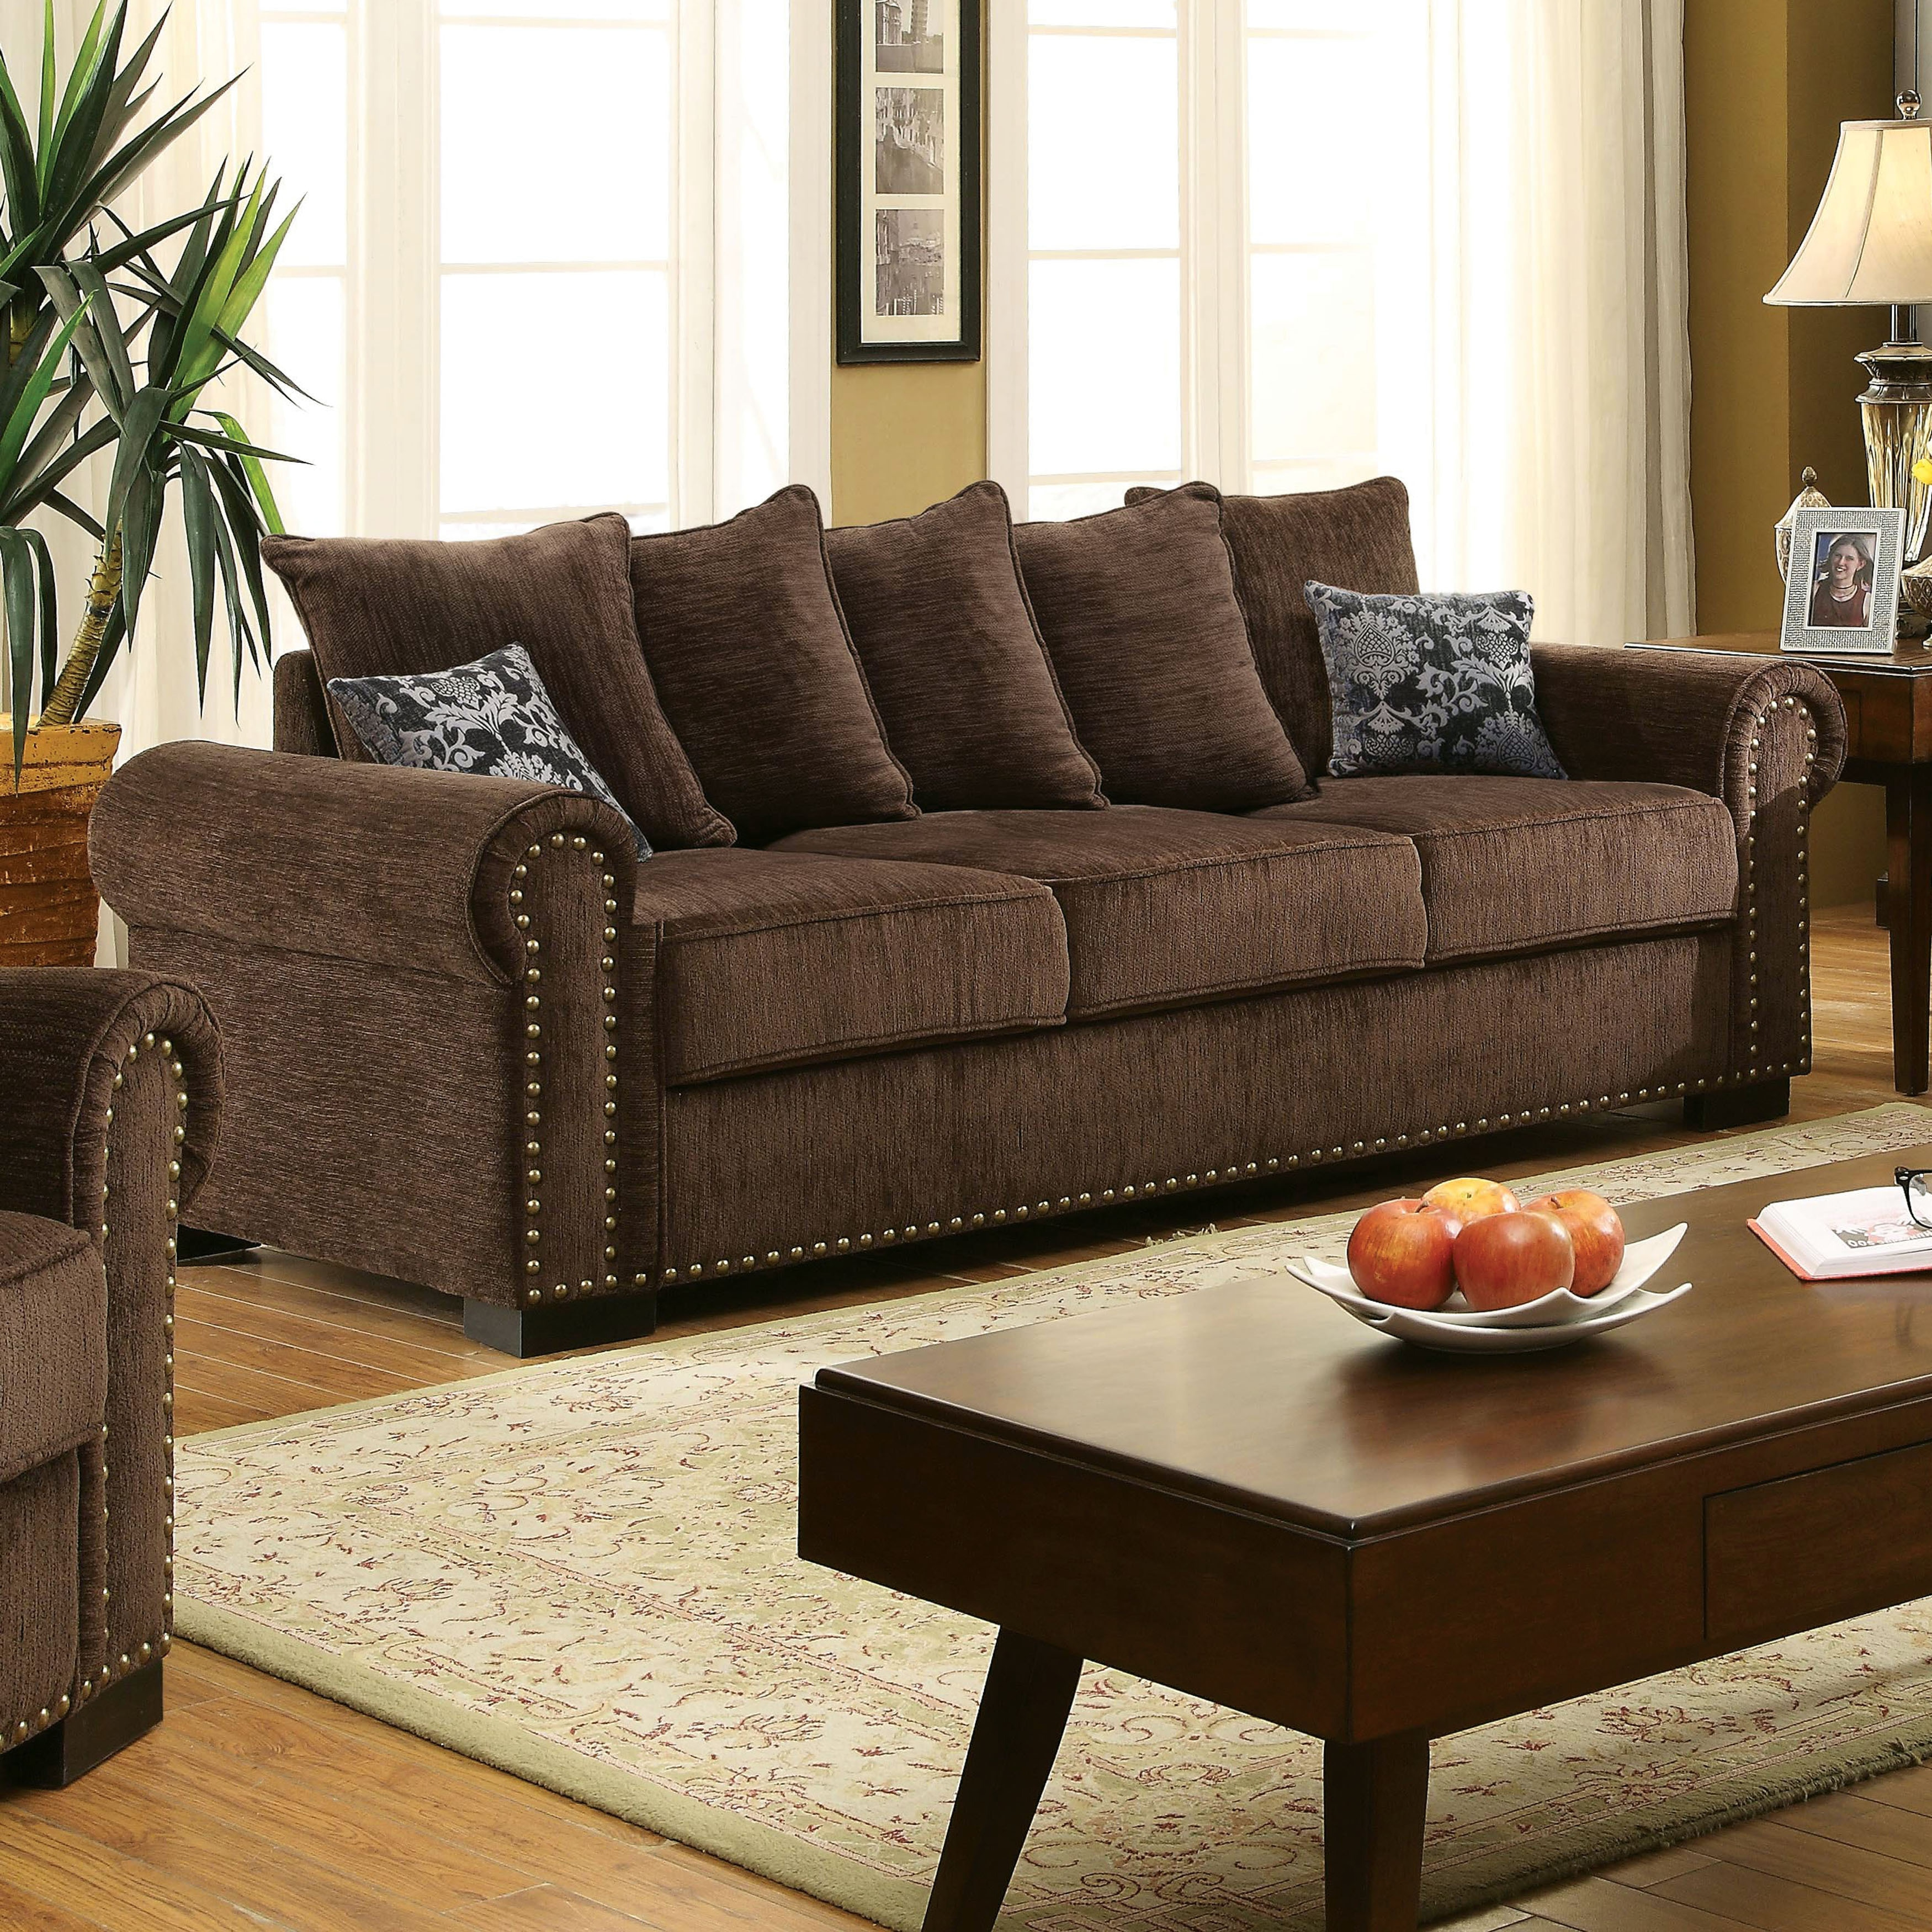 Furniture of America Pana Transitional Brown Sofa by FOA